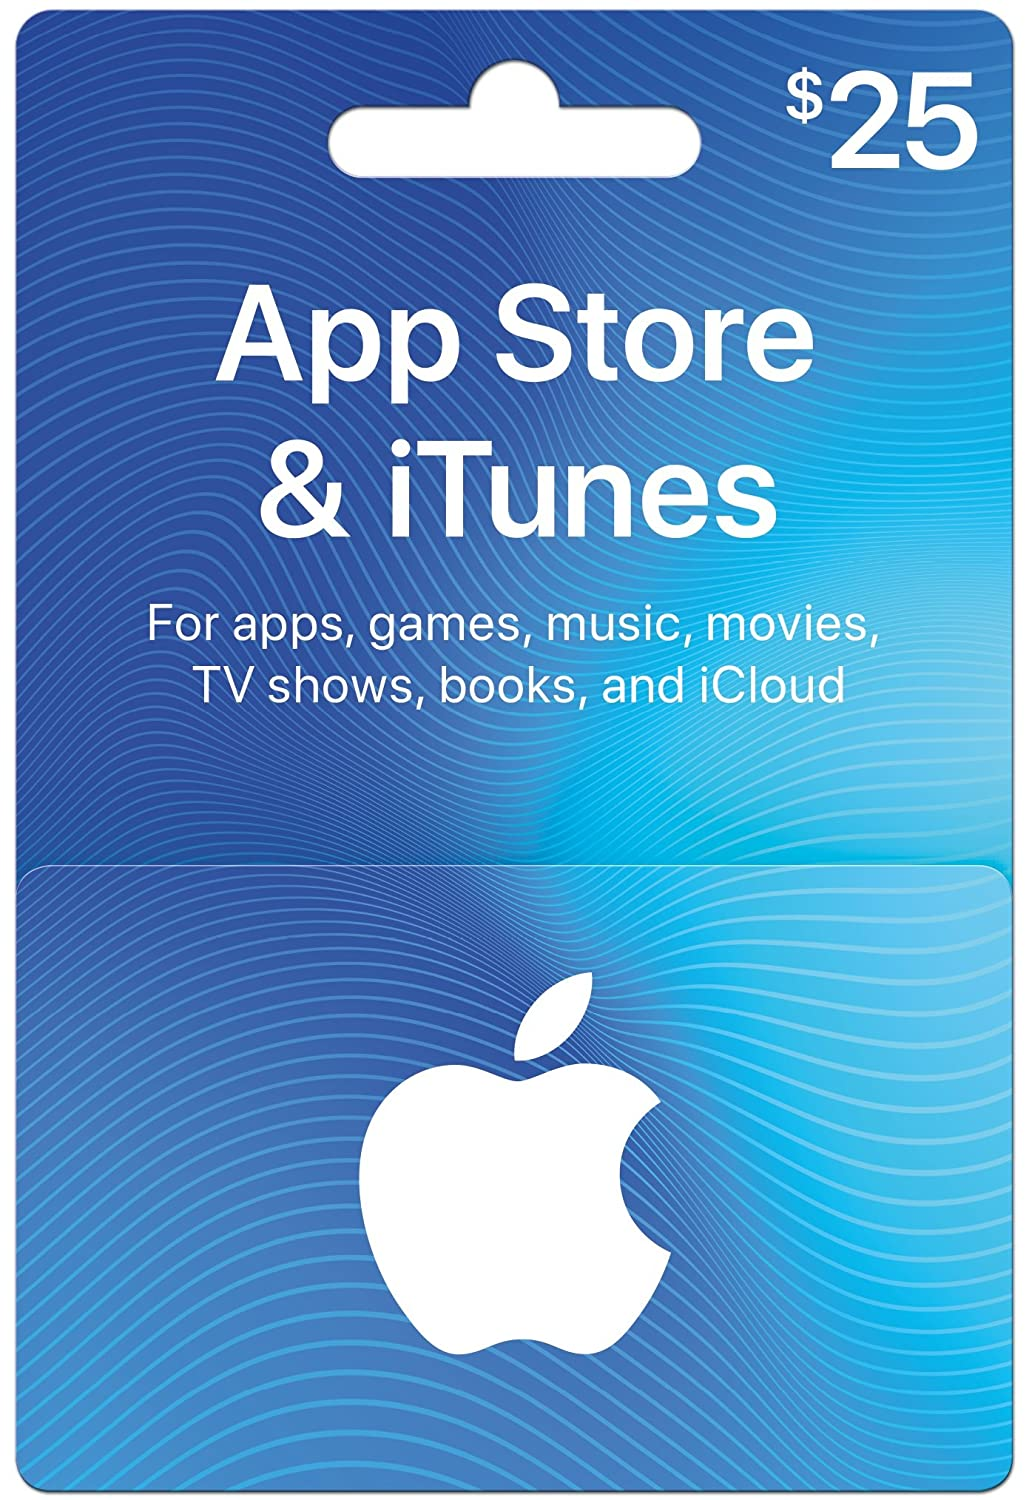 App Store & iTunes Gift Cards - Design May Vary Apple iTunes